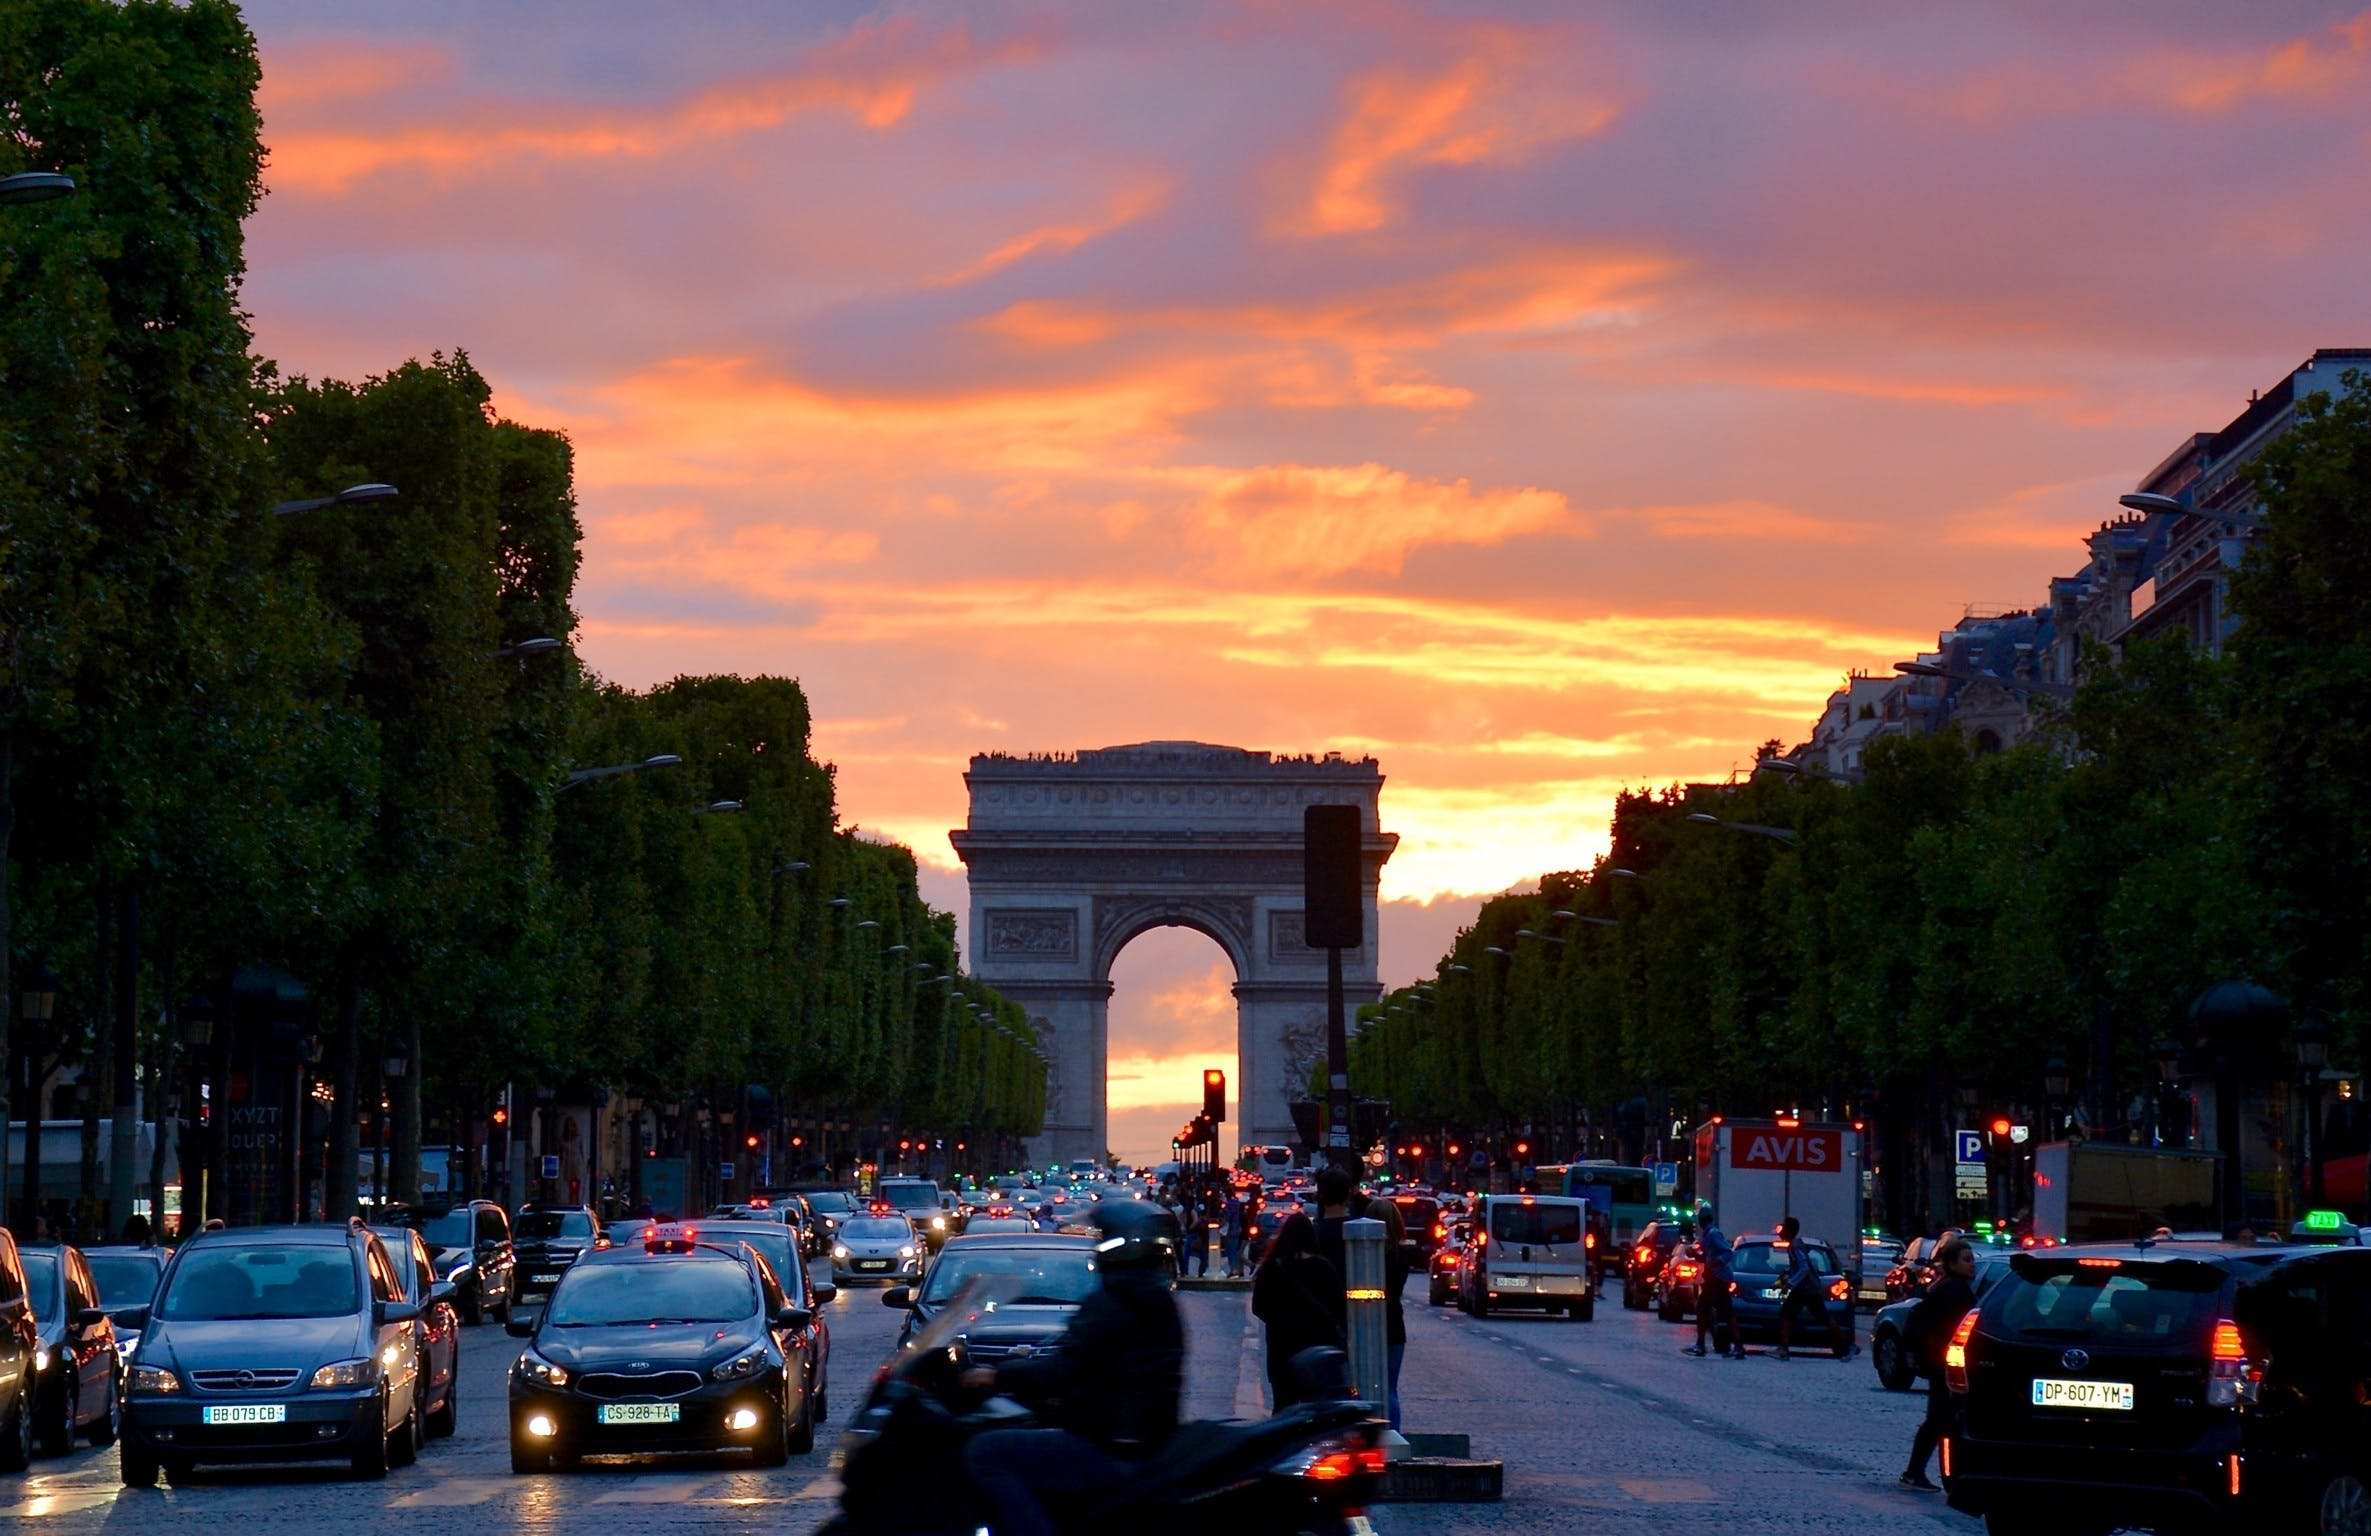 Crowded Street With Cars Along Arc De Triomphe